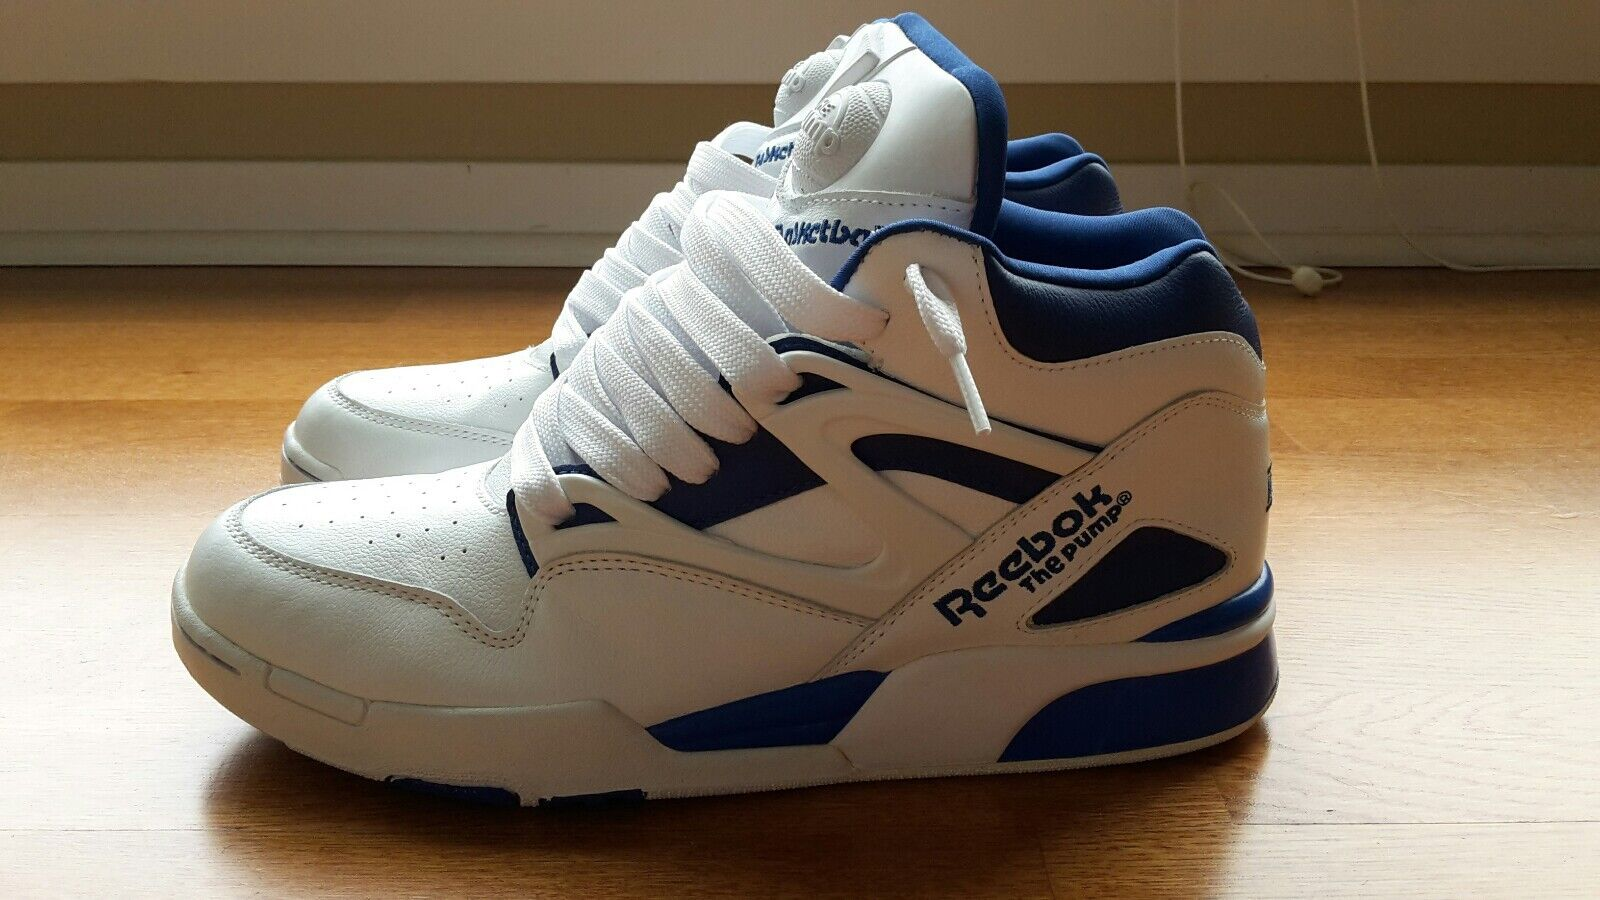 Reebok Pump Omni Lite White and Sky bluee Size 11 (only one model made)